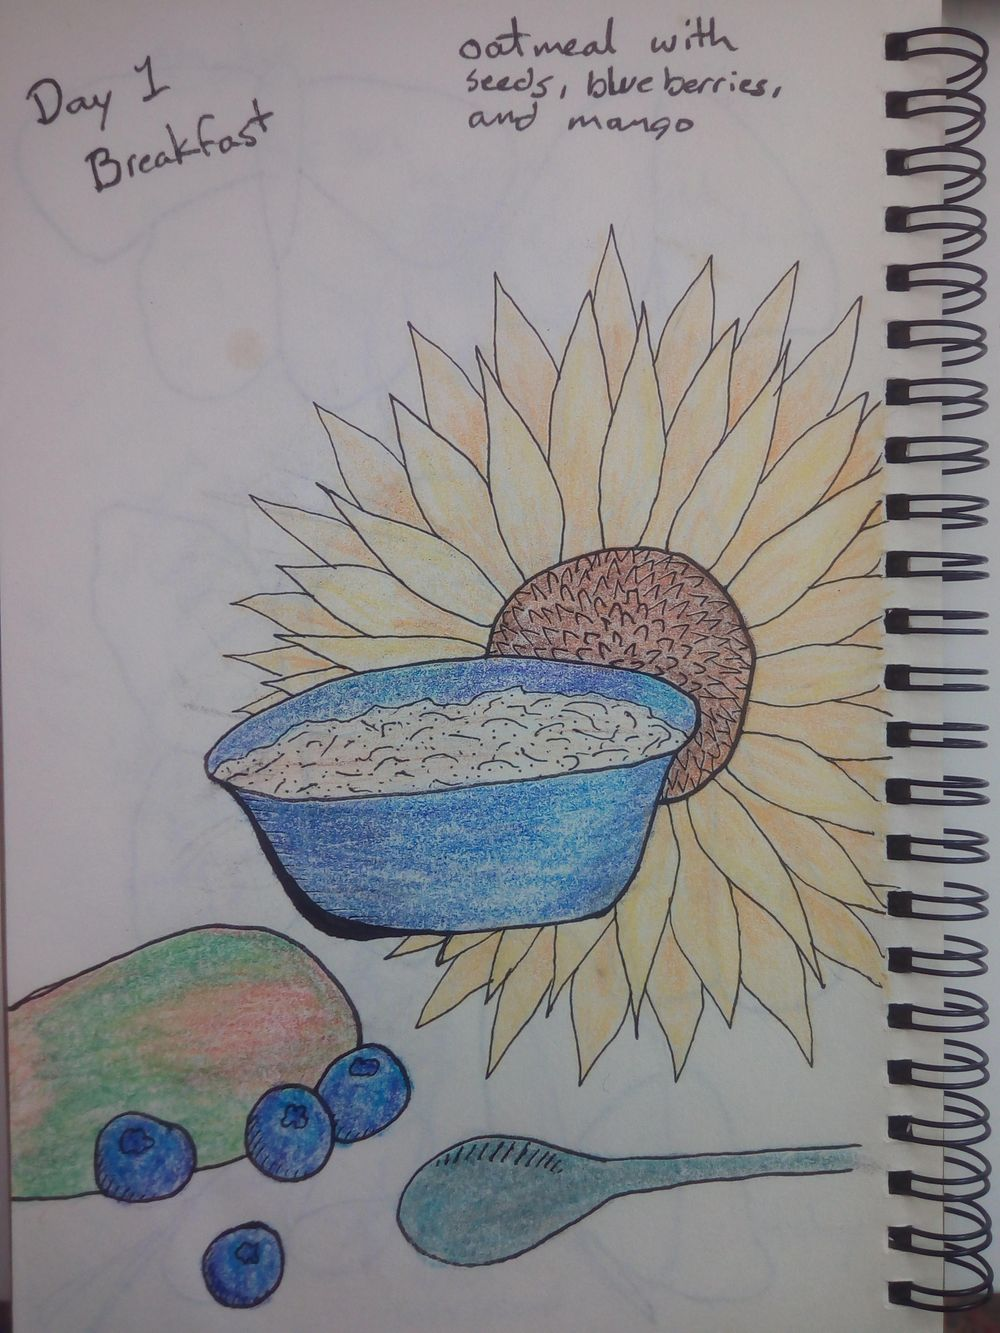 mindful eating/drawing - image 1 - student project